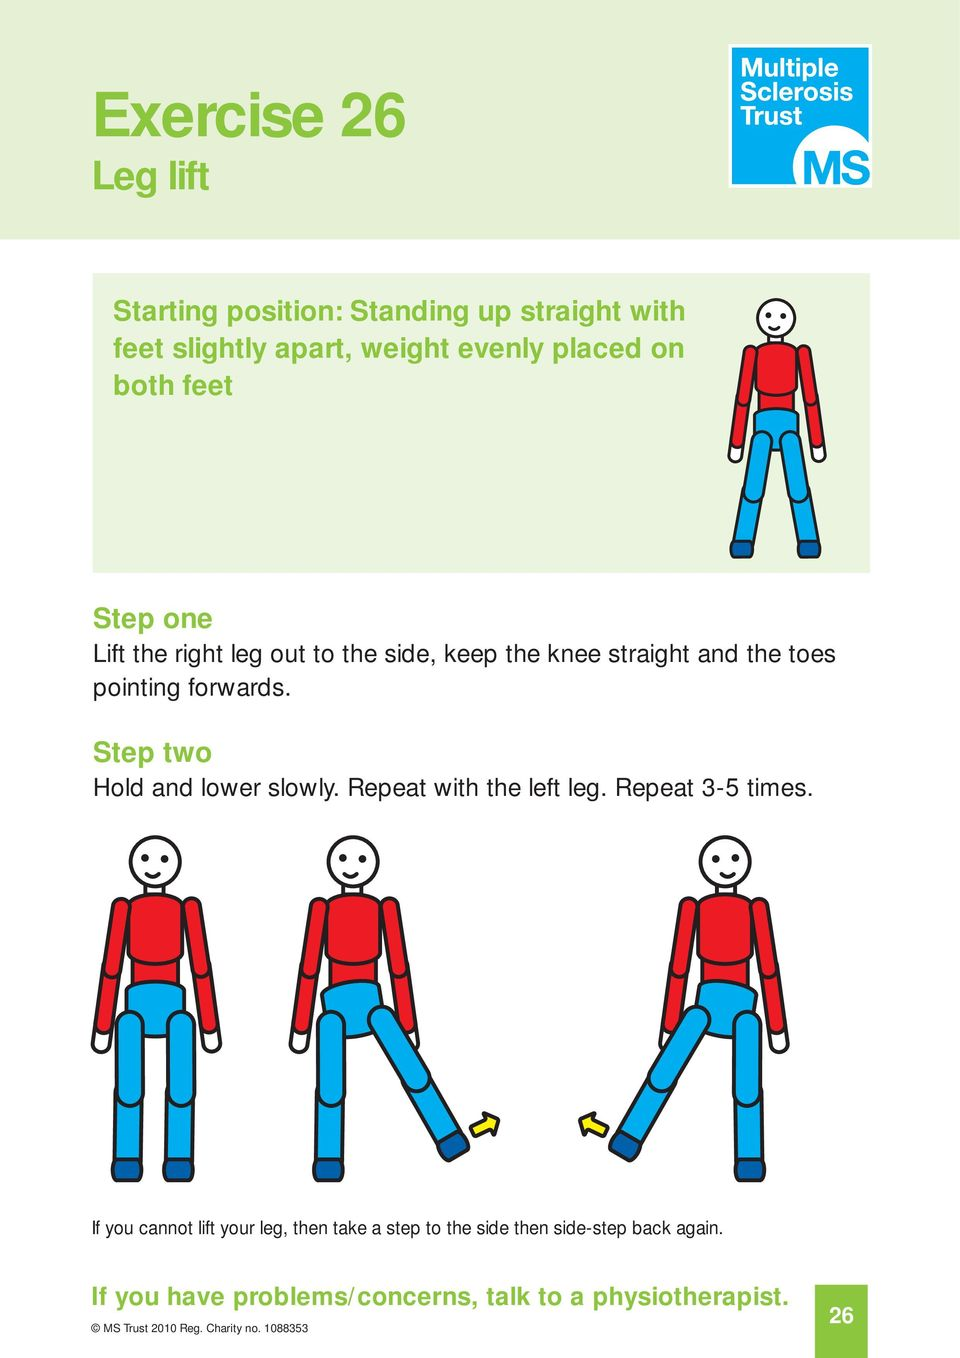 straight and the toes pointing forwards. Hold and lower slowly. Repeat with the left leg.